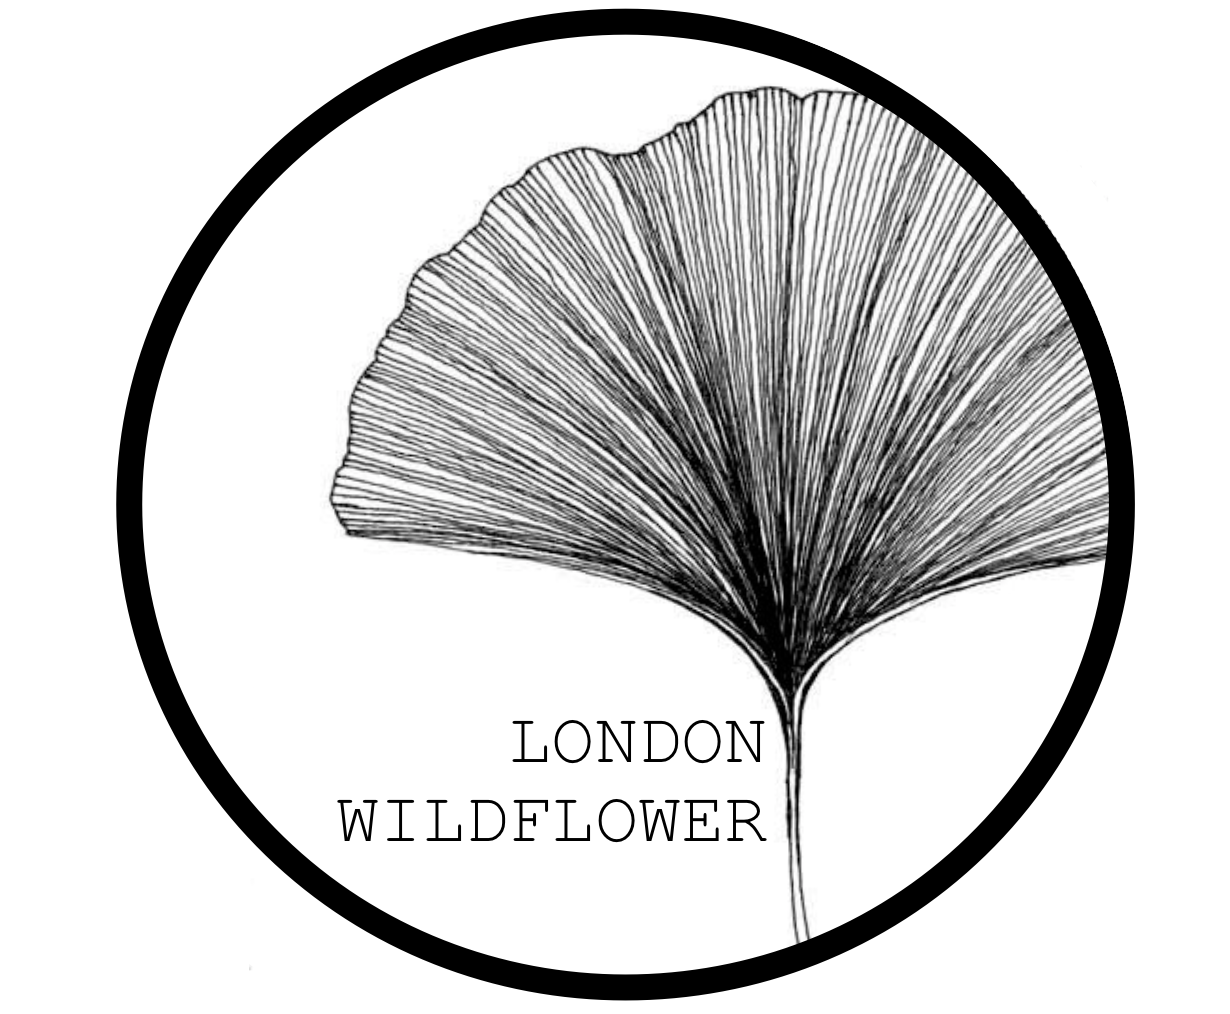 London Wildflower